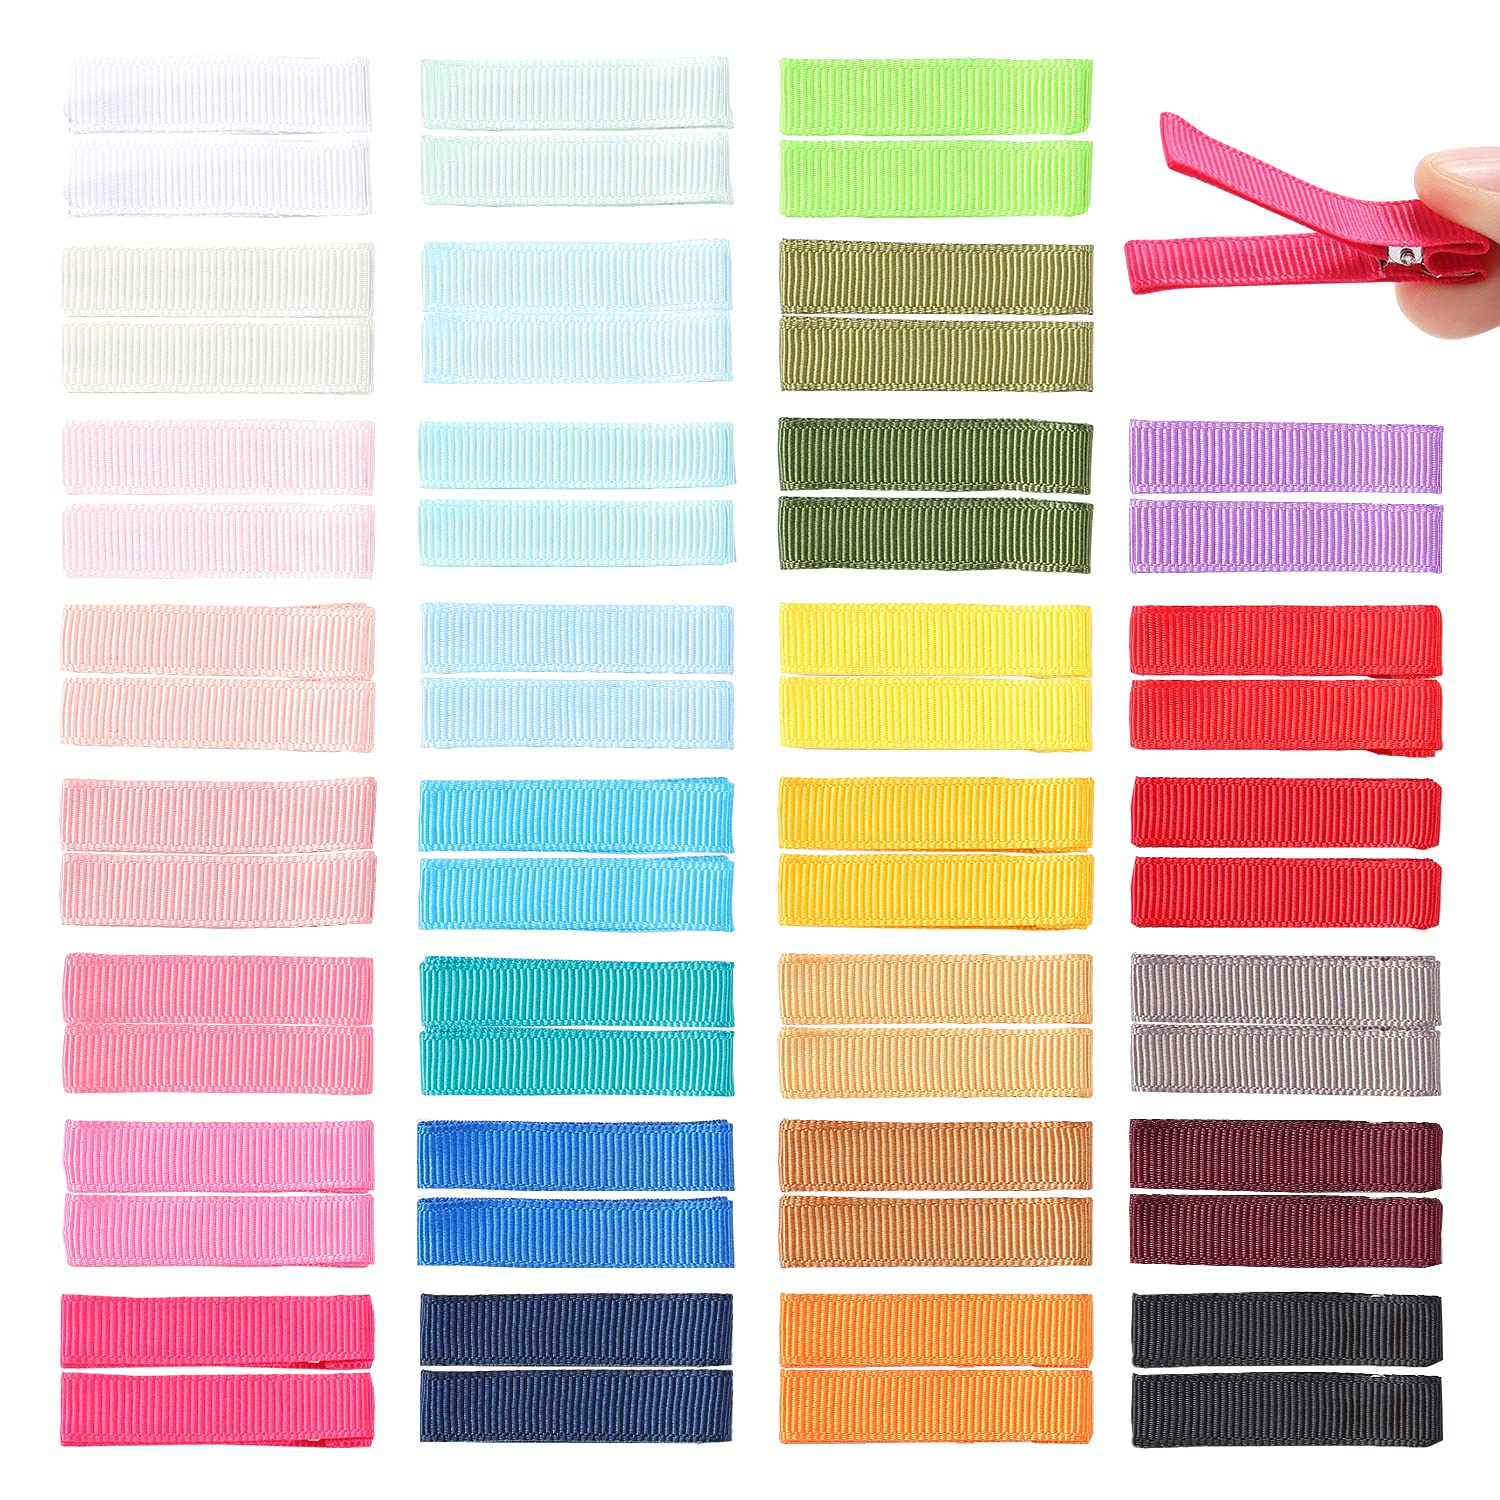 Cinaci 60 Pack/30 Pairs 5 CM 2 Inch Solid Plain Grosgrain Ribbon Cloth Fabric Covered Fully Lined DIY Metal Alligator Hair Clips Duckbill Barrettes Accessories for Baby Girls Toddlers Kids Teens